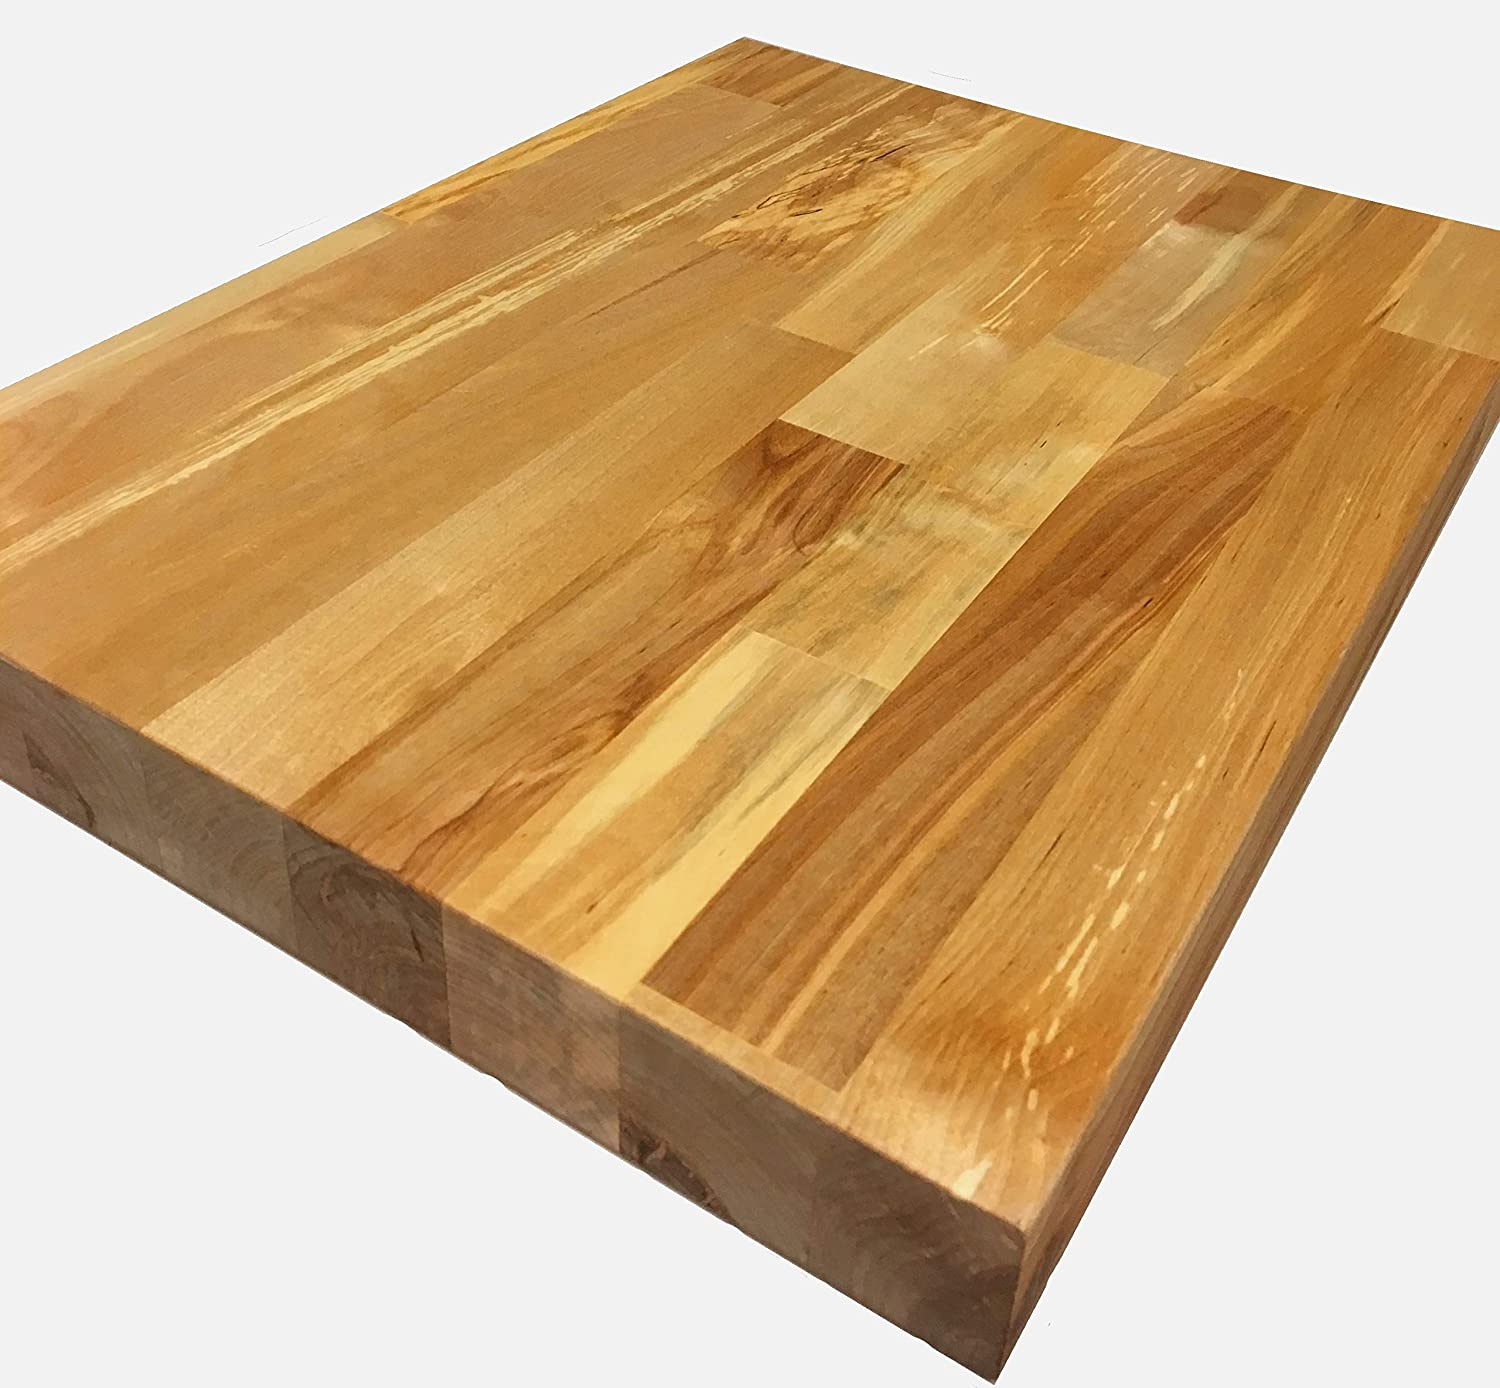 Butcher Block Workbench >> Fpd Solid Wood Birch Butcher Block Worktop Workbench Uv Finish 3 Sizes